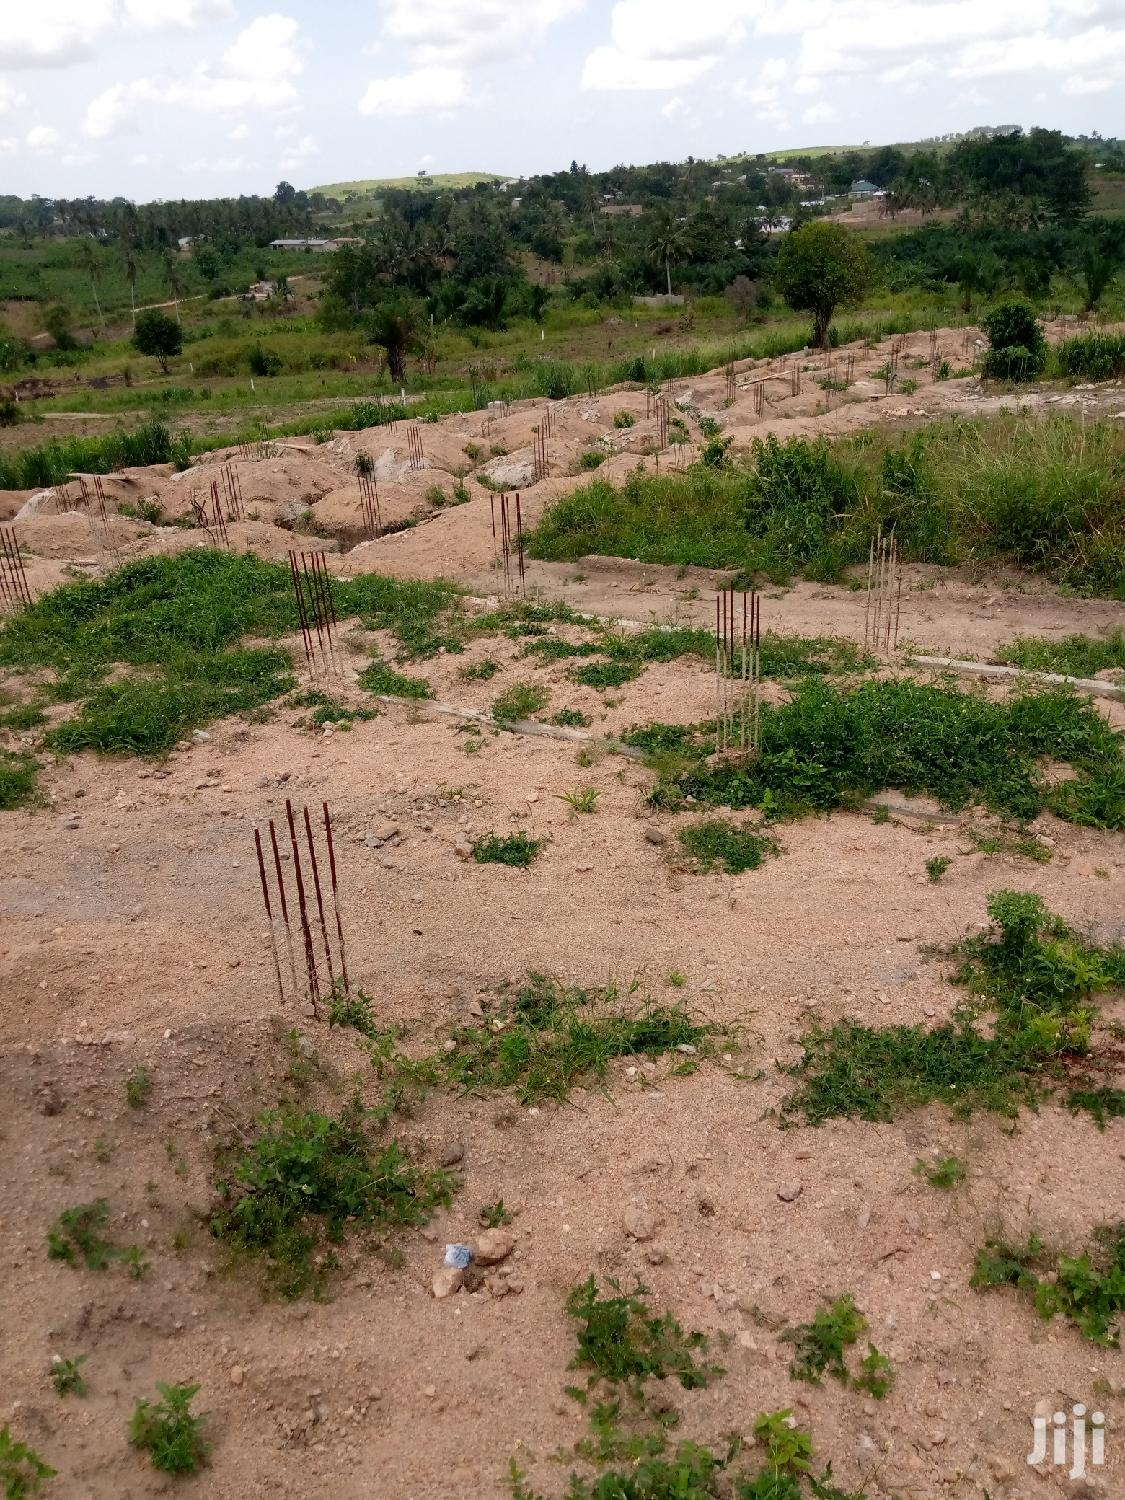 Genuine Lands for Sale at Buduatta. | Land & Plots For Sale for sale in Odorkor, Greater Accra, Ghana